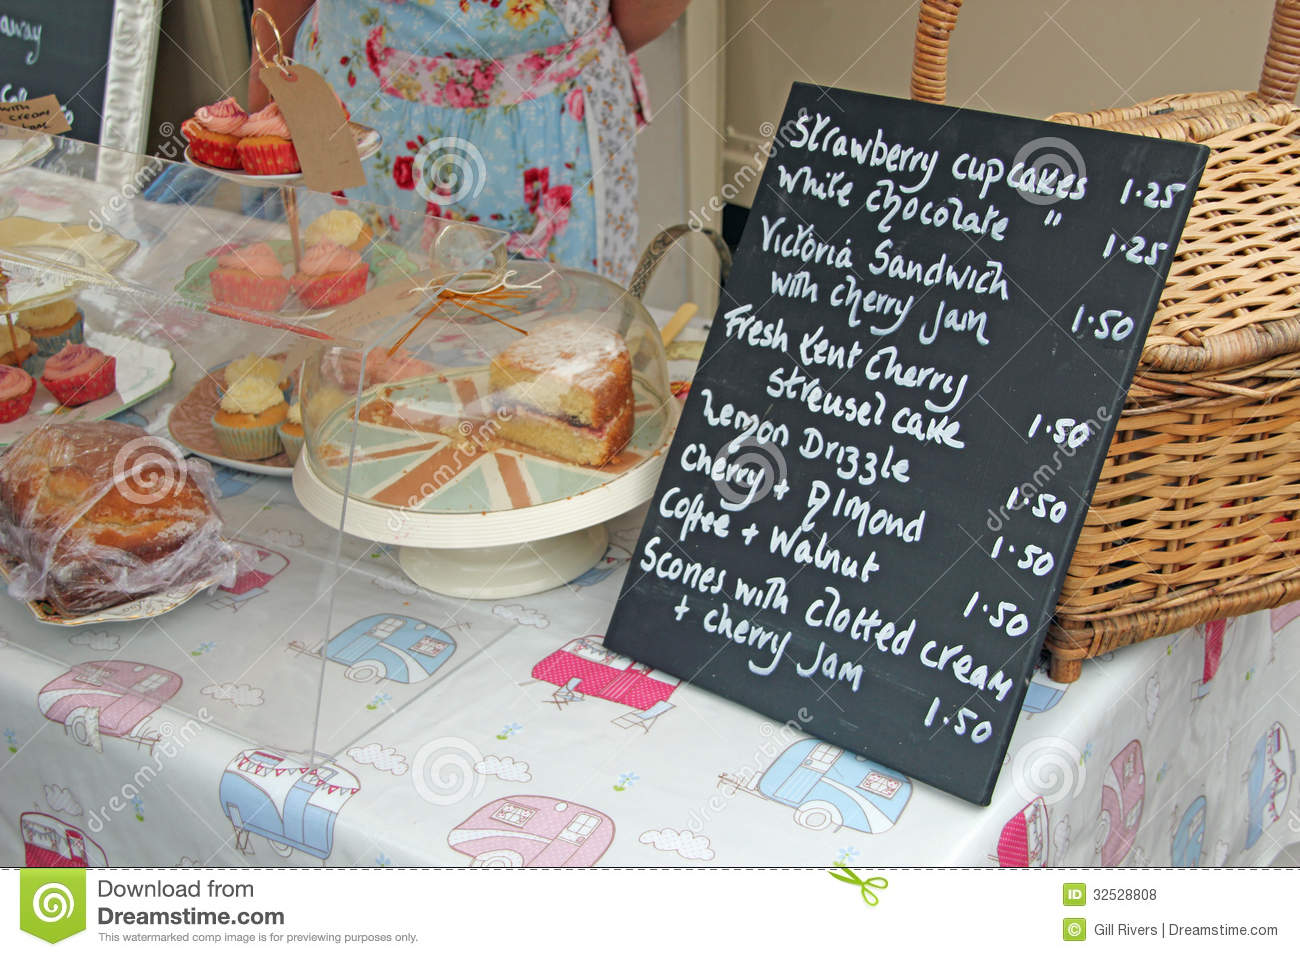 how to price cakes to sell